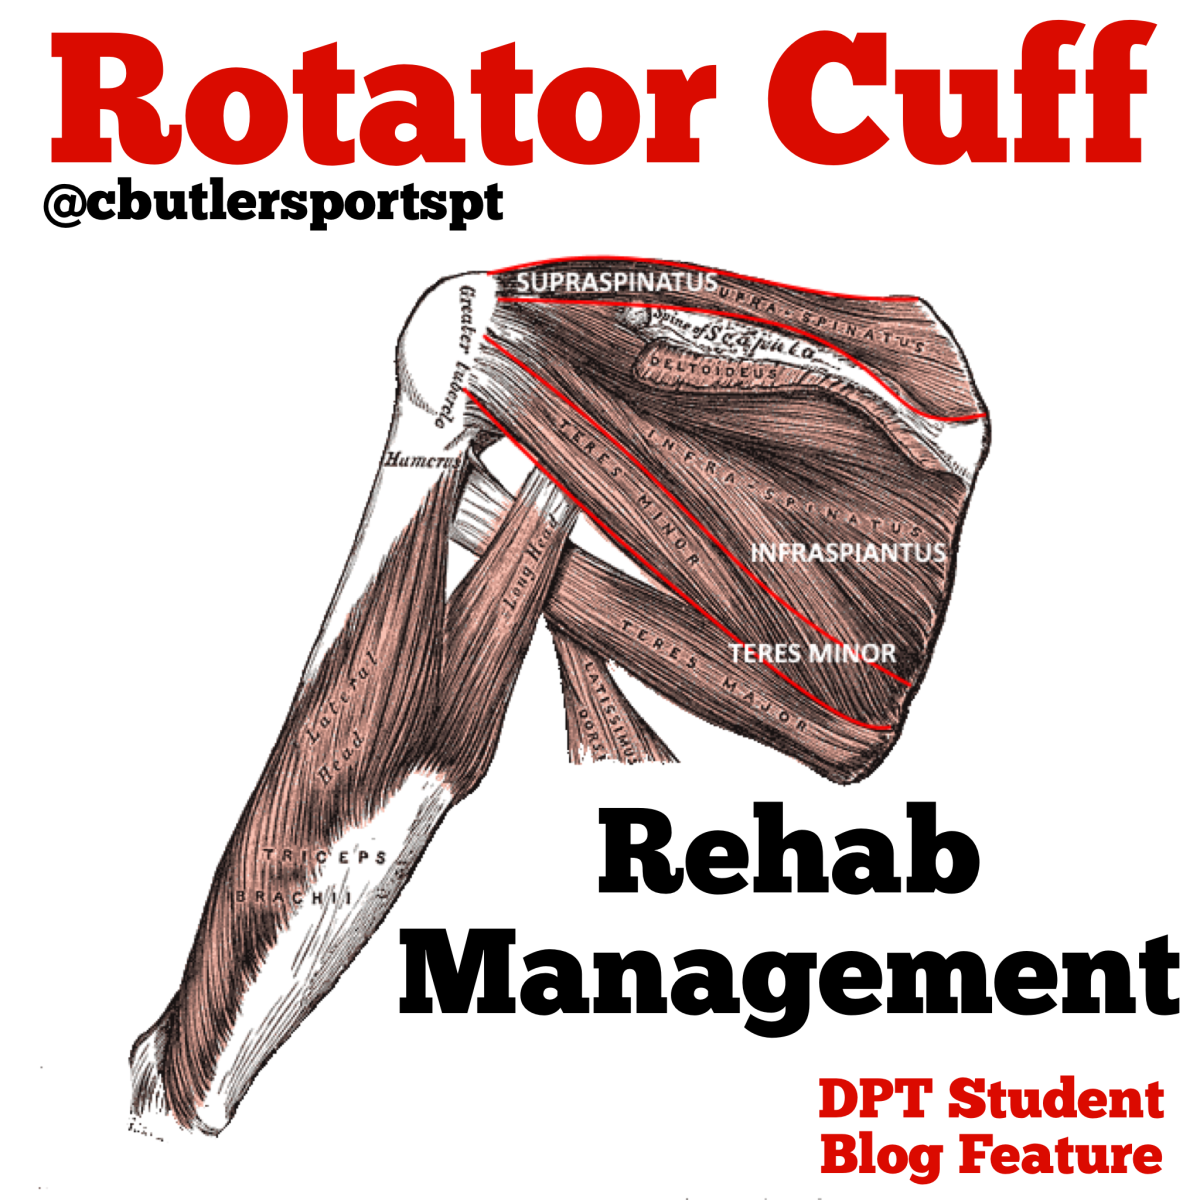 Rotator Cuff Rehab Management